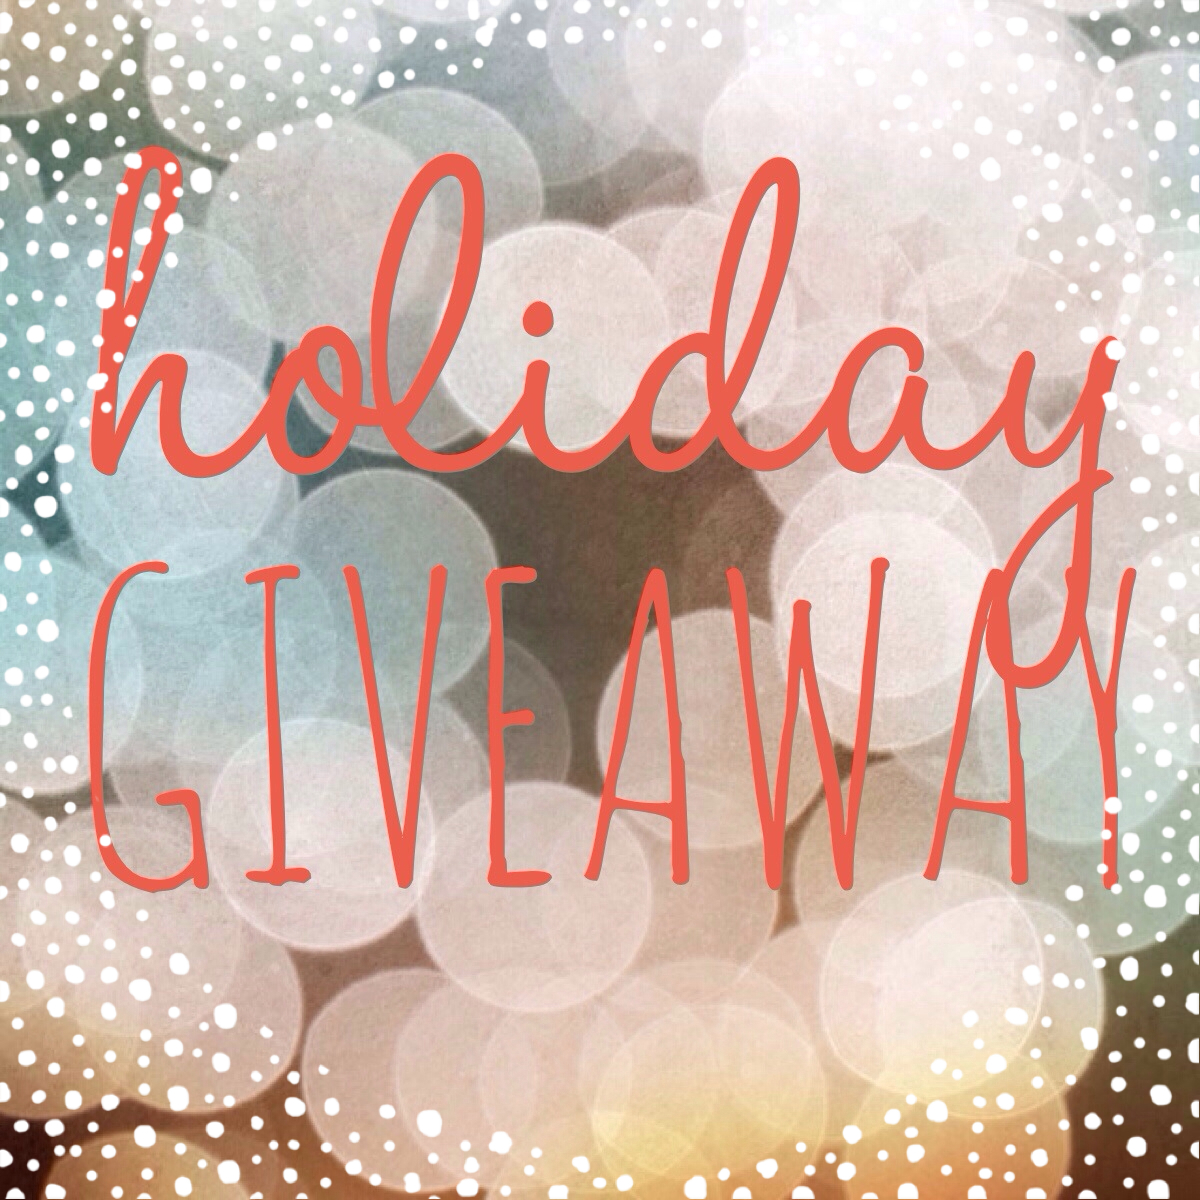 Express It With A Card Holiday Giveaway!!